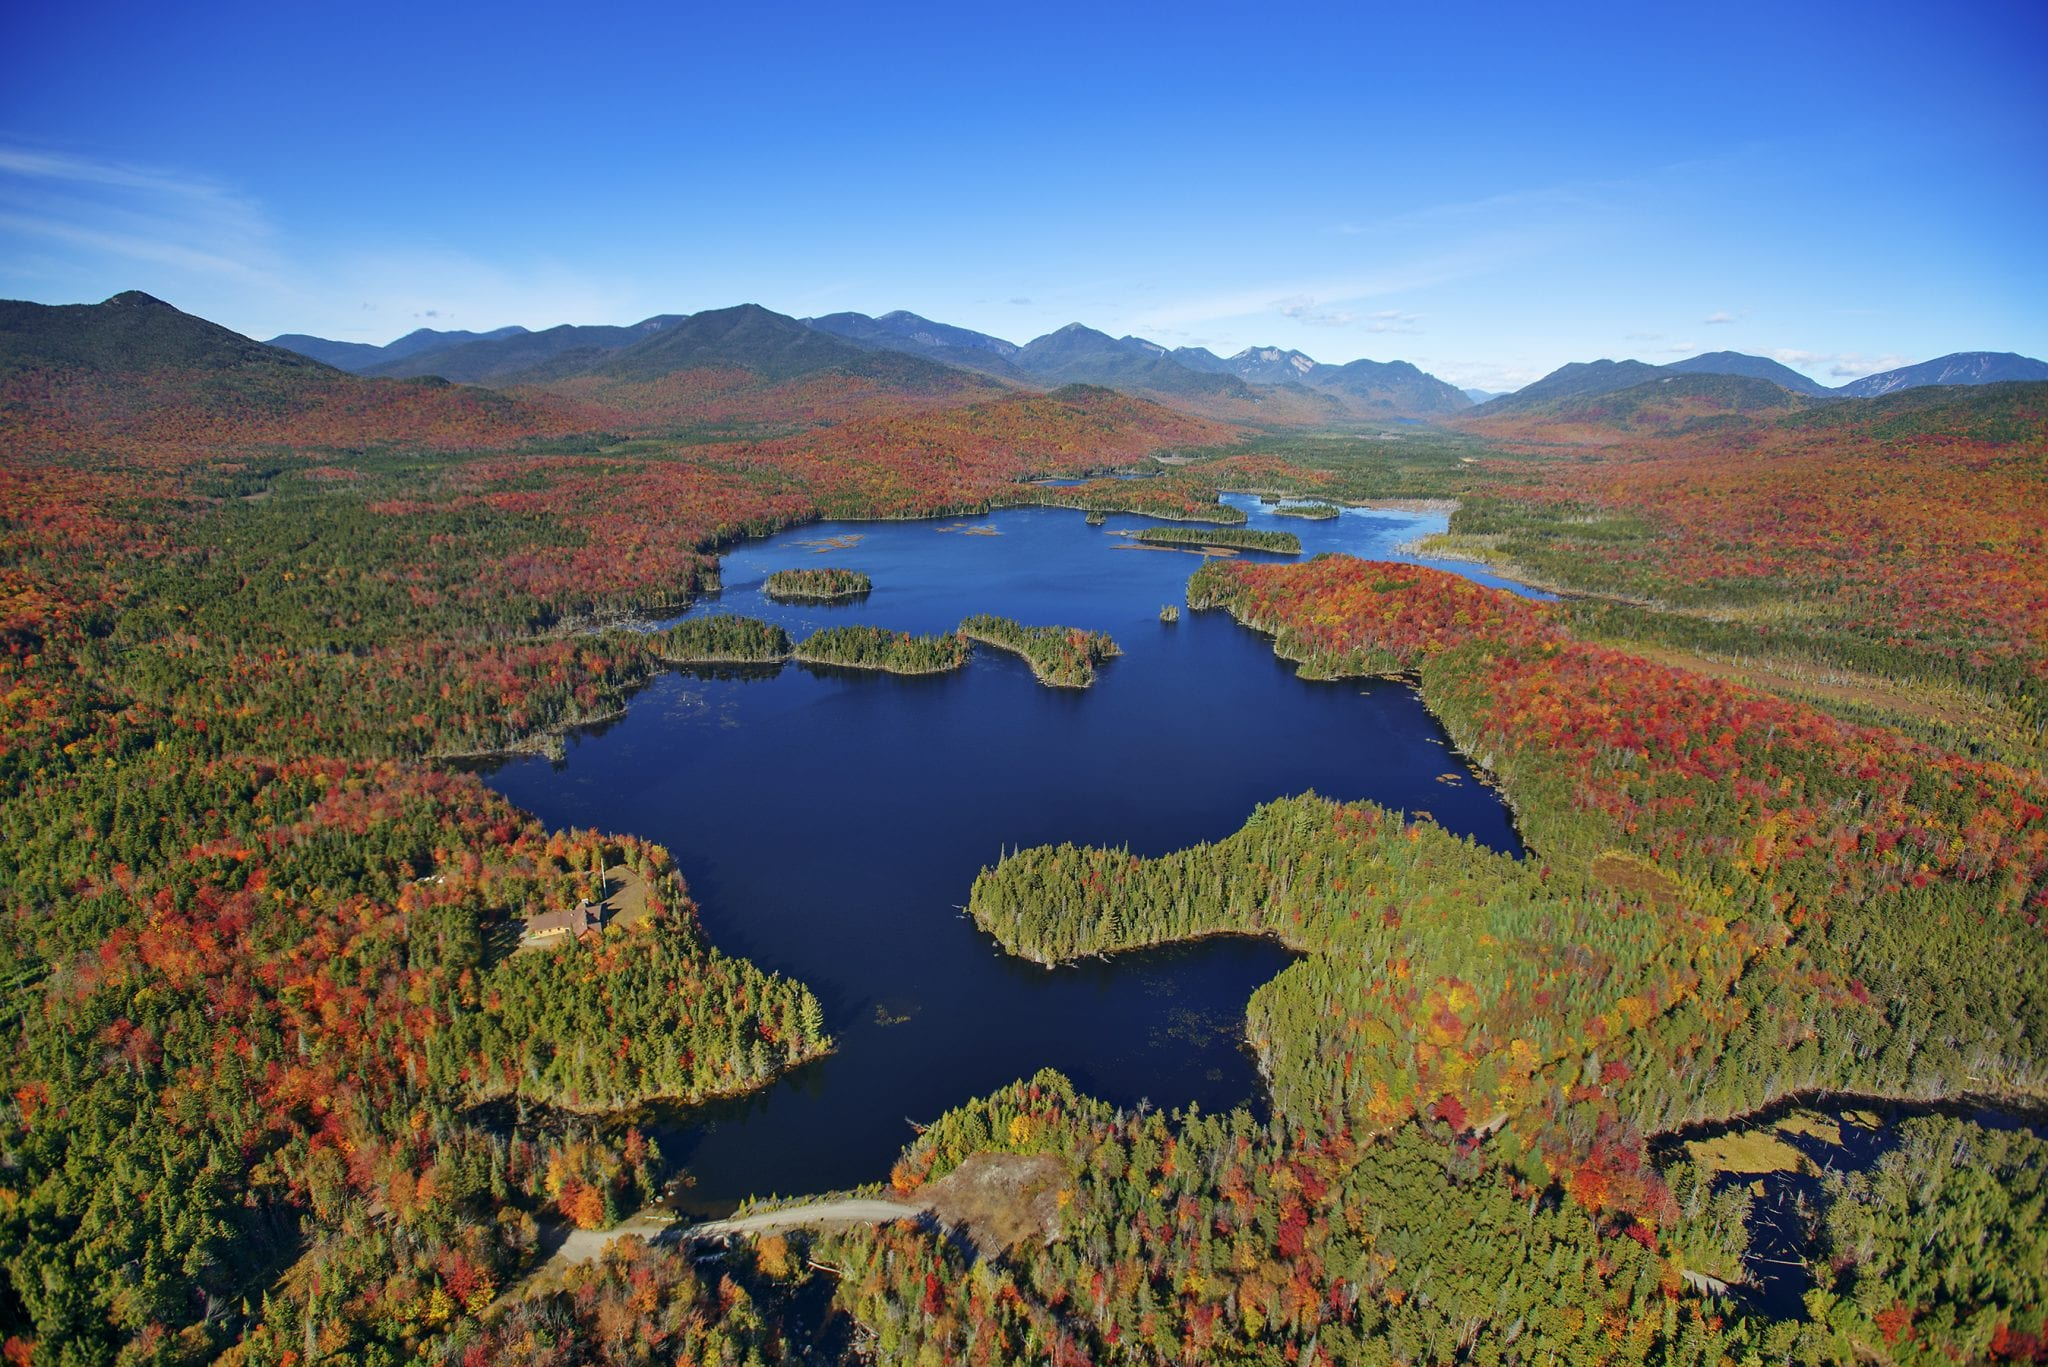 Boreas Ponds Dam photo by Carl Heilman/Wild Visions, Inc. courtesy of the Adirondack Council.